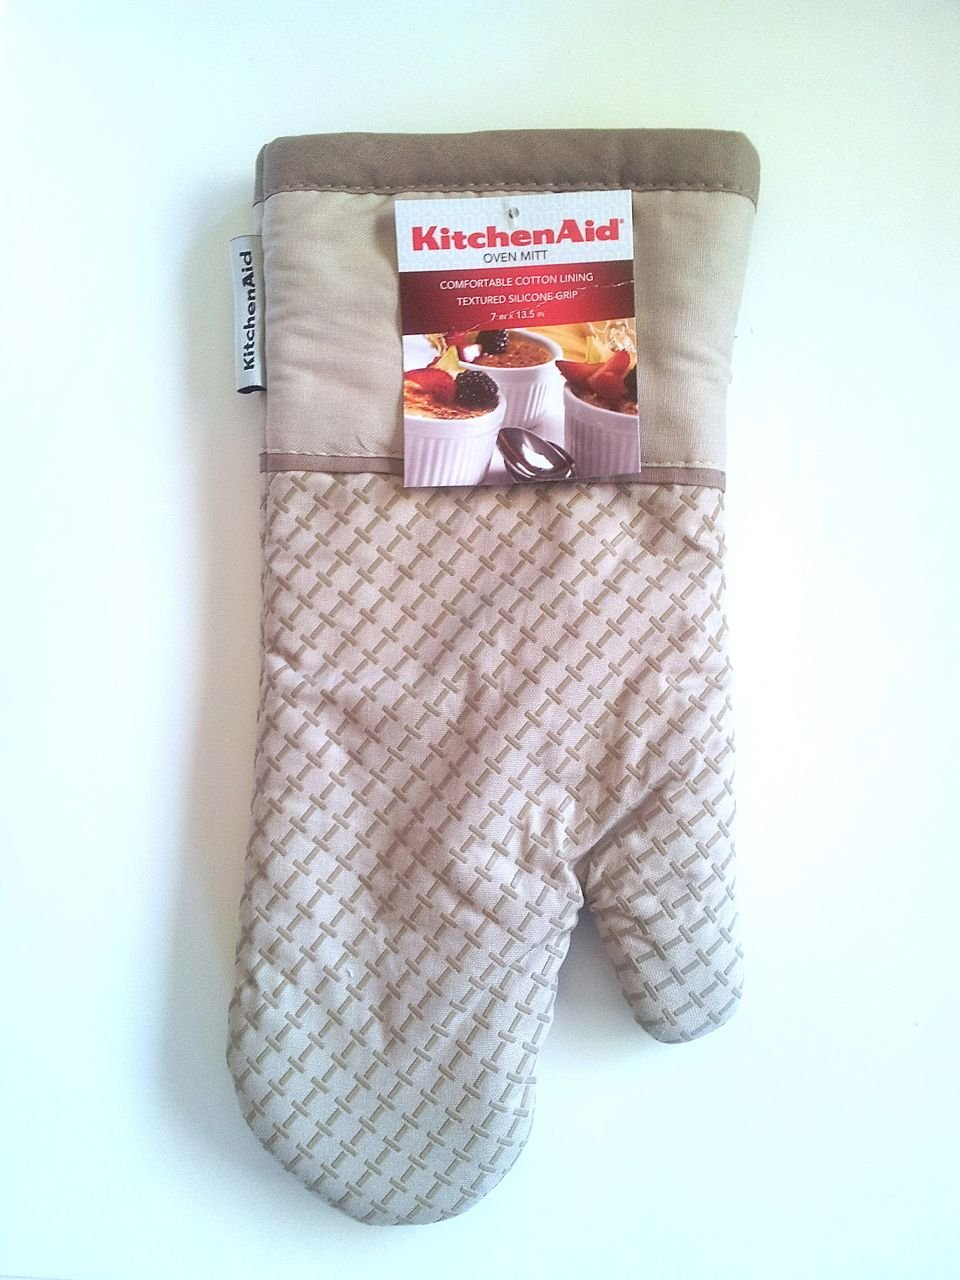 KitchenAid Oven Mitt with Printed Silicone (Sand)